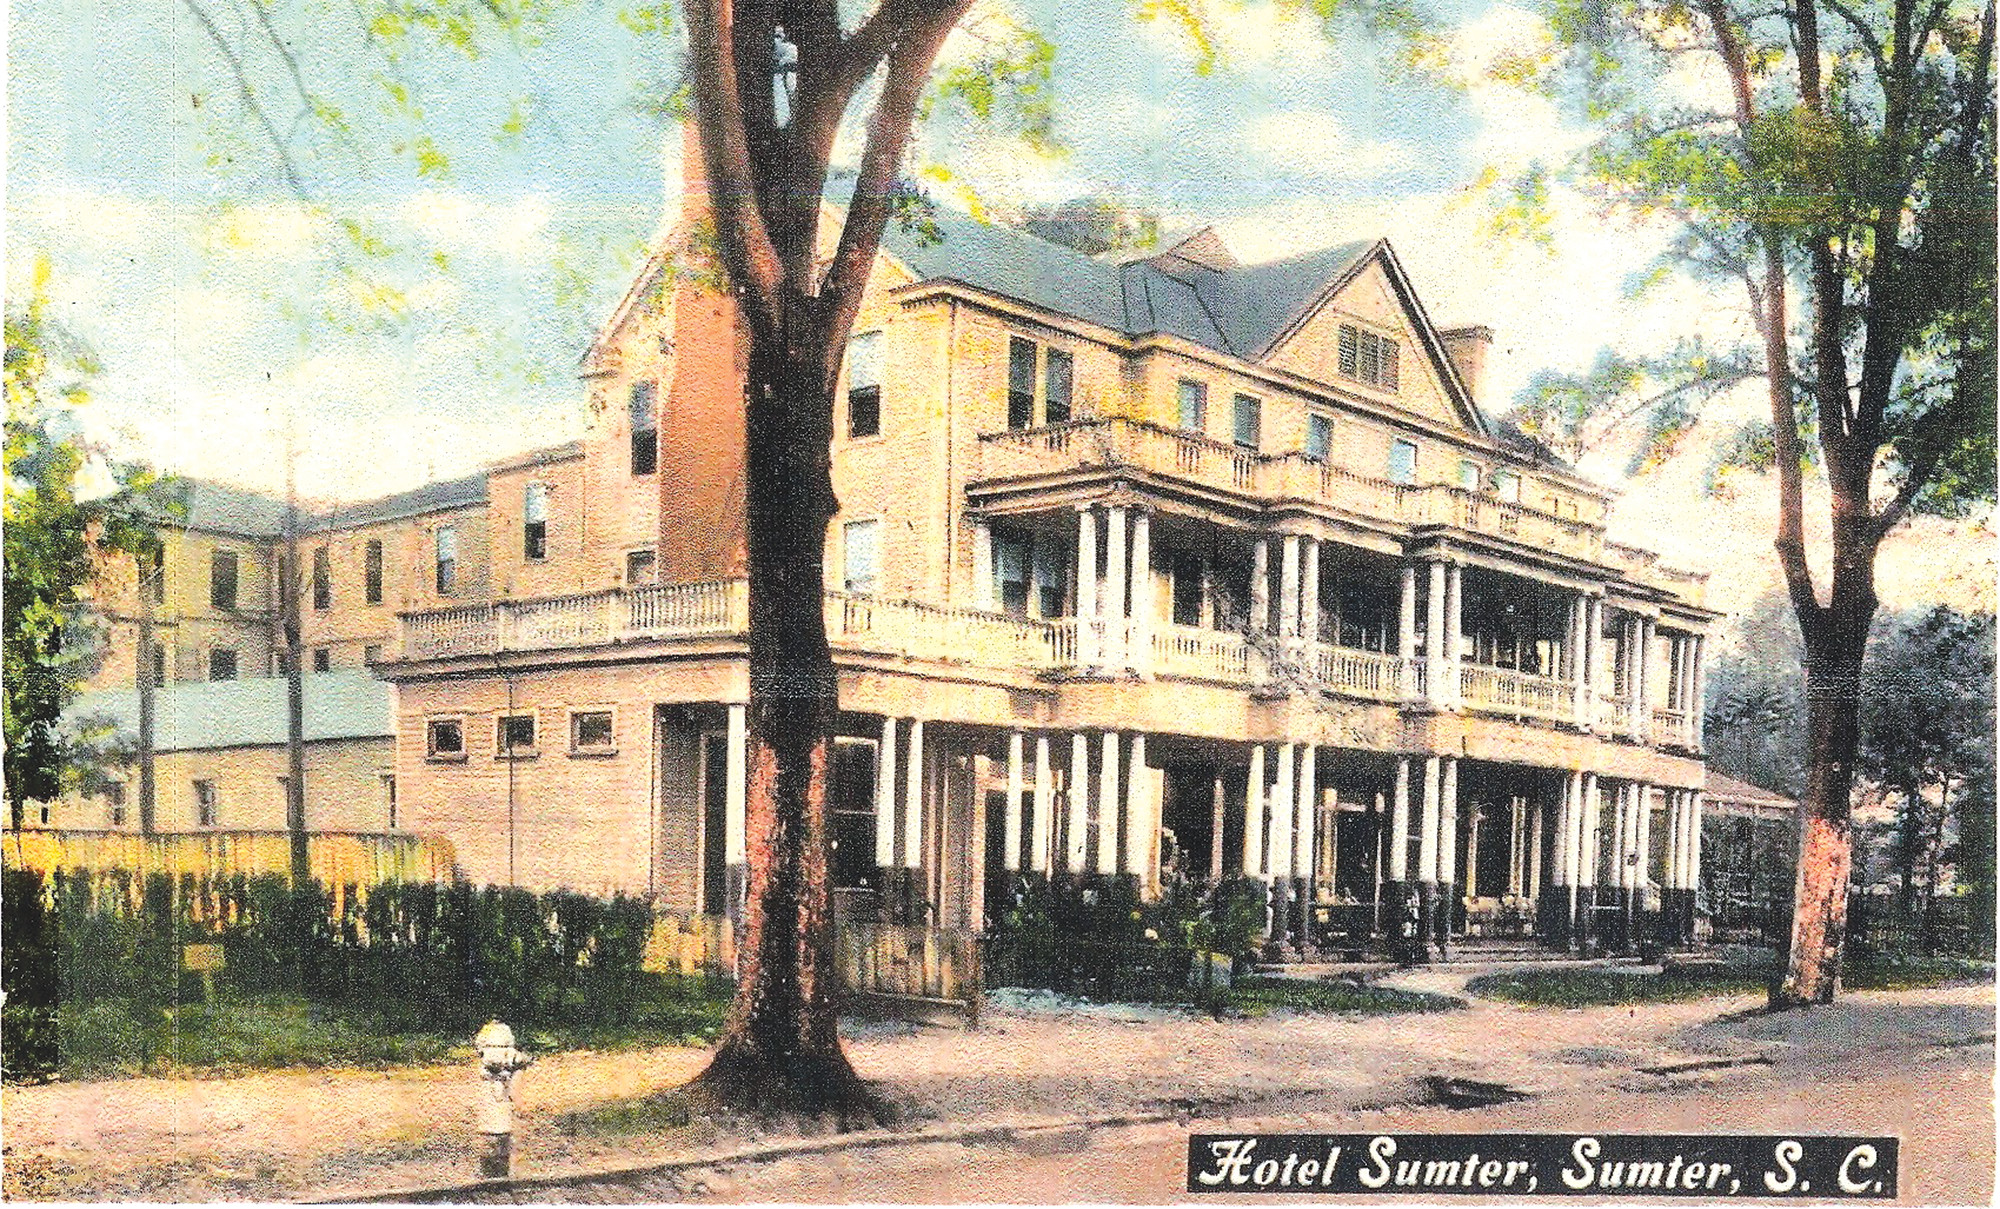 Hotel Sumter opened to guests in 1901 and had a lobby, rotundas and reading room at its location on South Main Street.